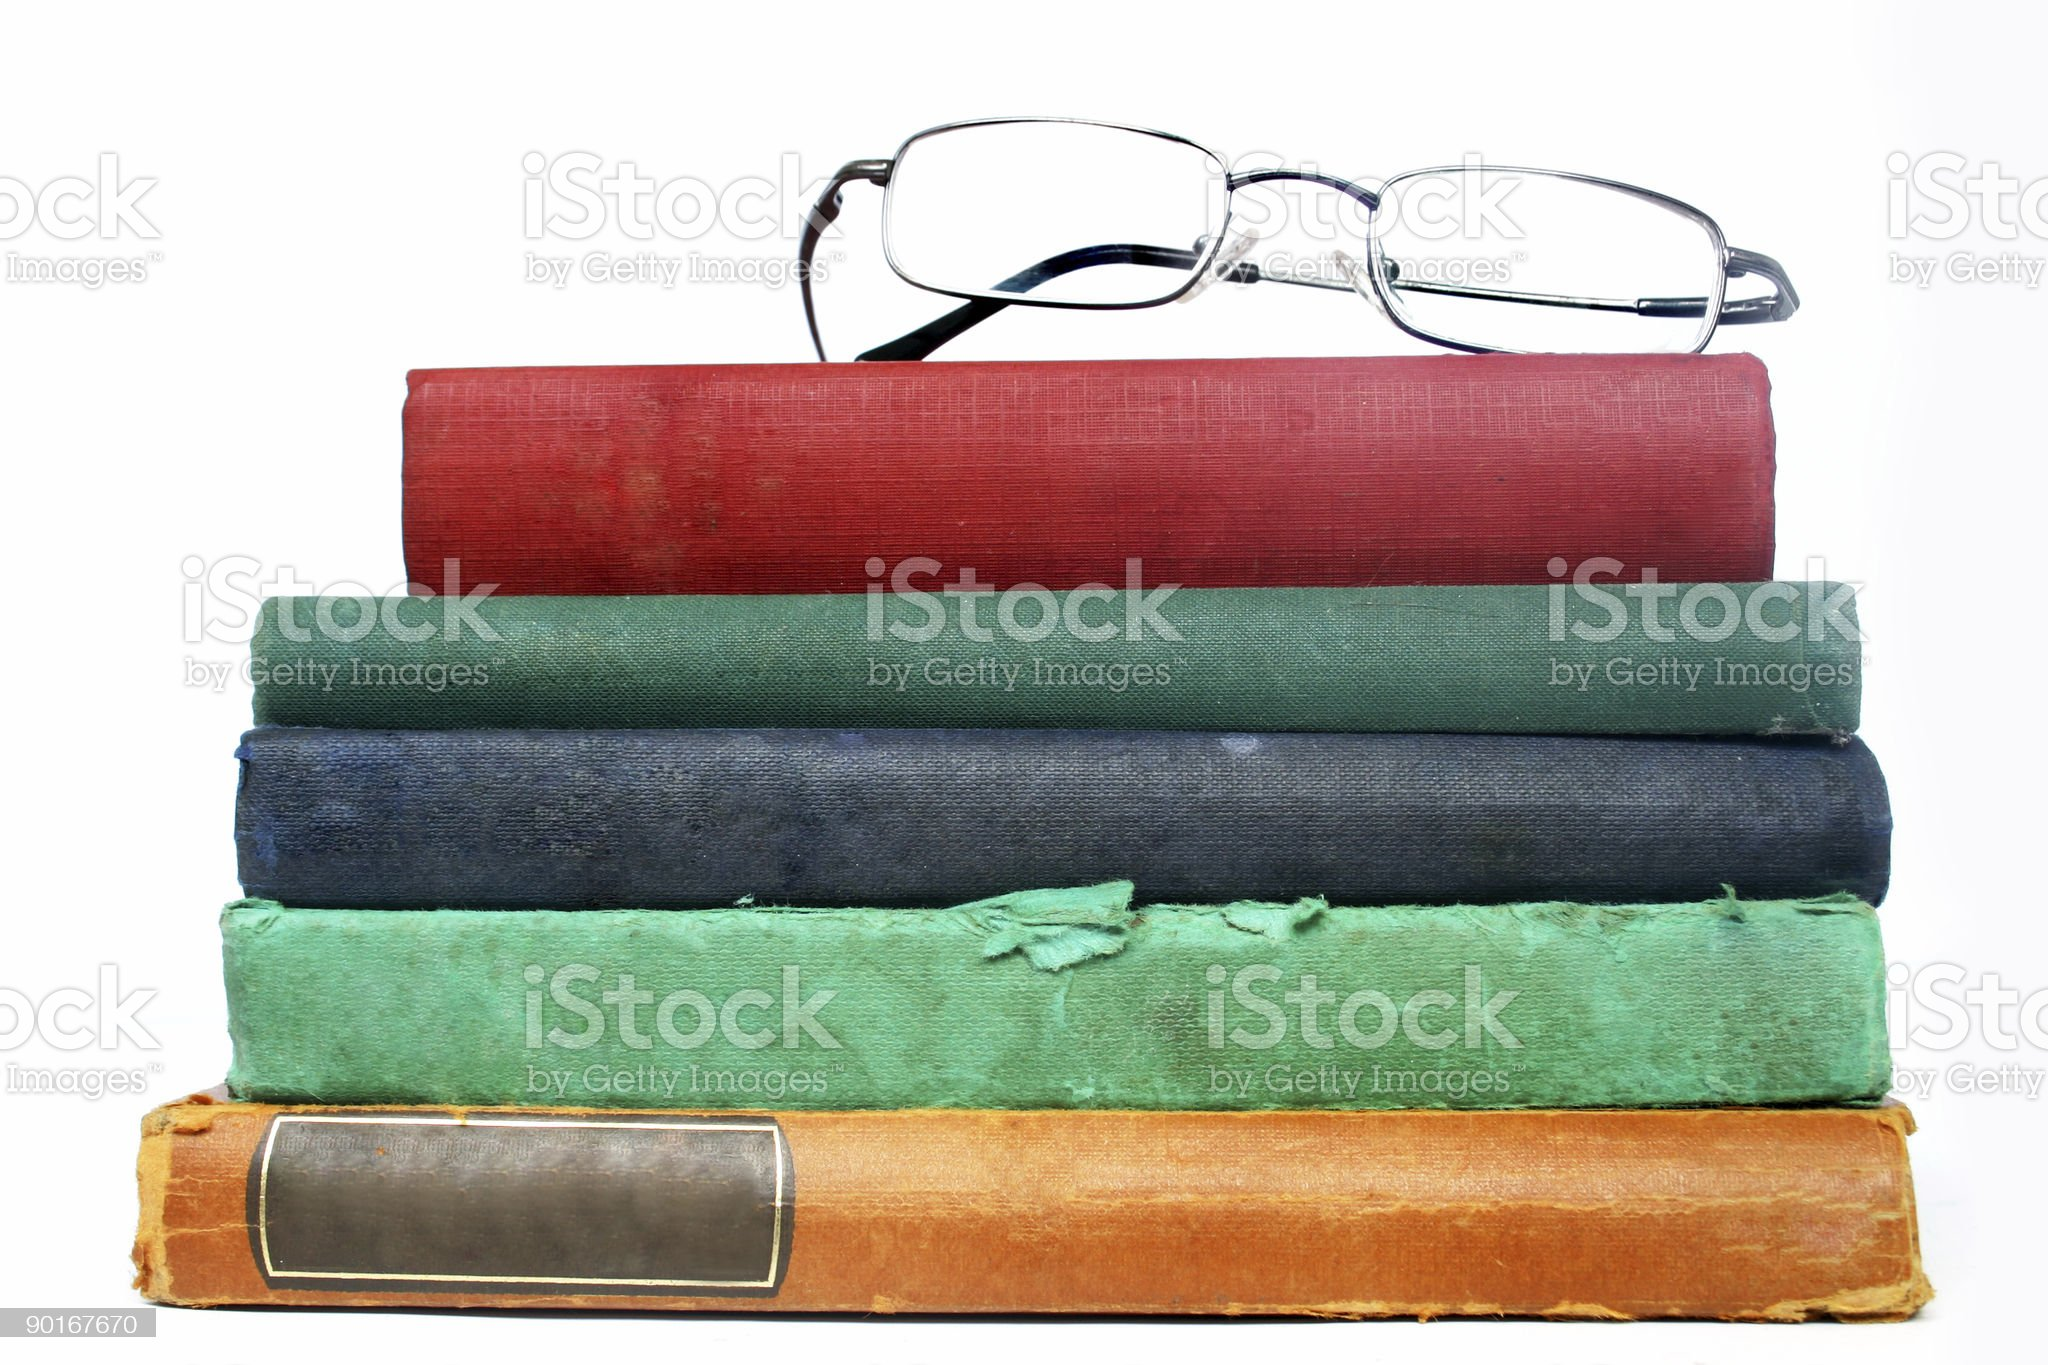 Old Books and Glasses royalty-free stock photo